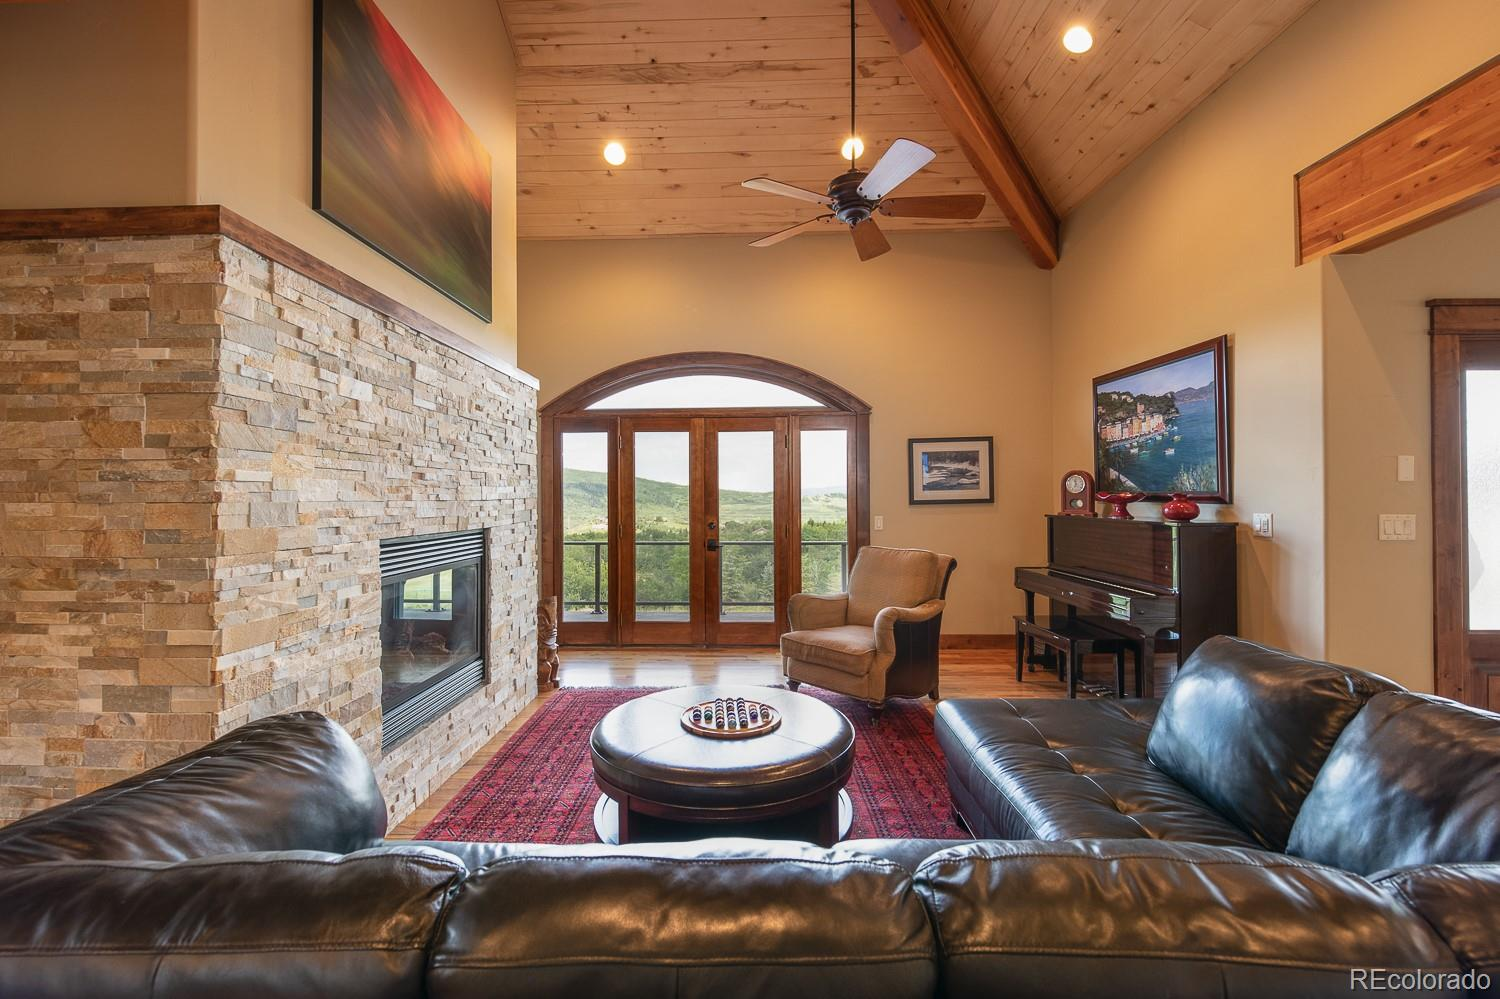 MLS# 4540014 - 9 - 1940 Clubhouse Drive, Steamboat Springs, CO 80487